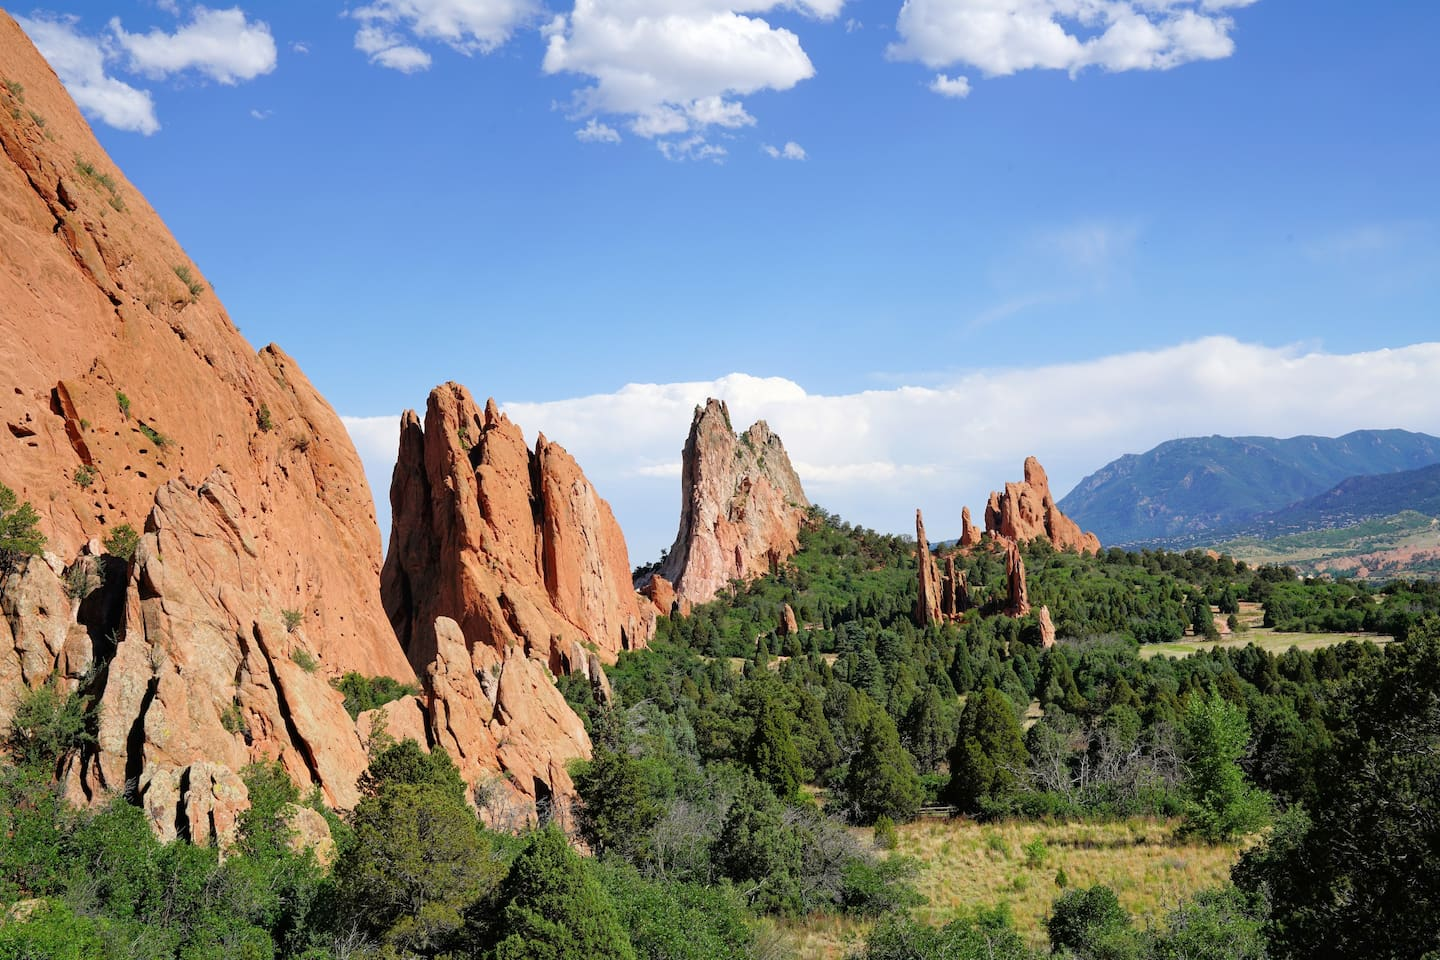 Wonderful Garden of the Gods Park just up the street.